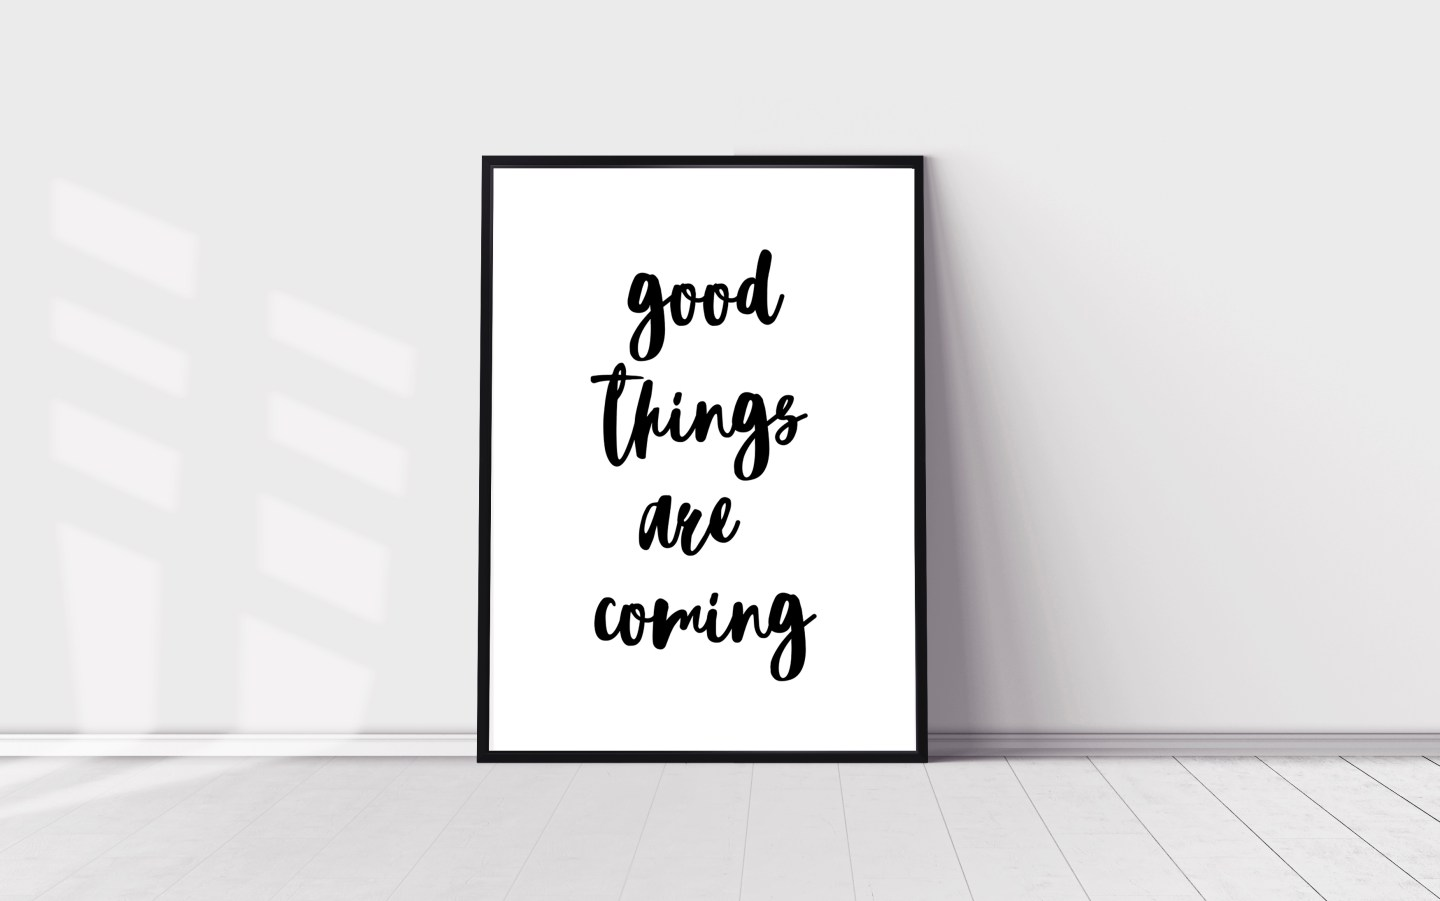 Inspirational Quote Wall Art Prints: Good Things Are Coming